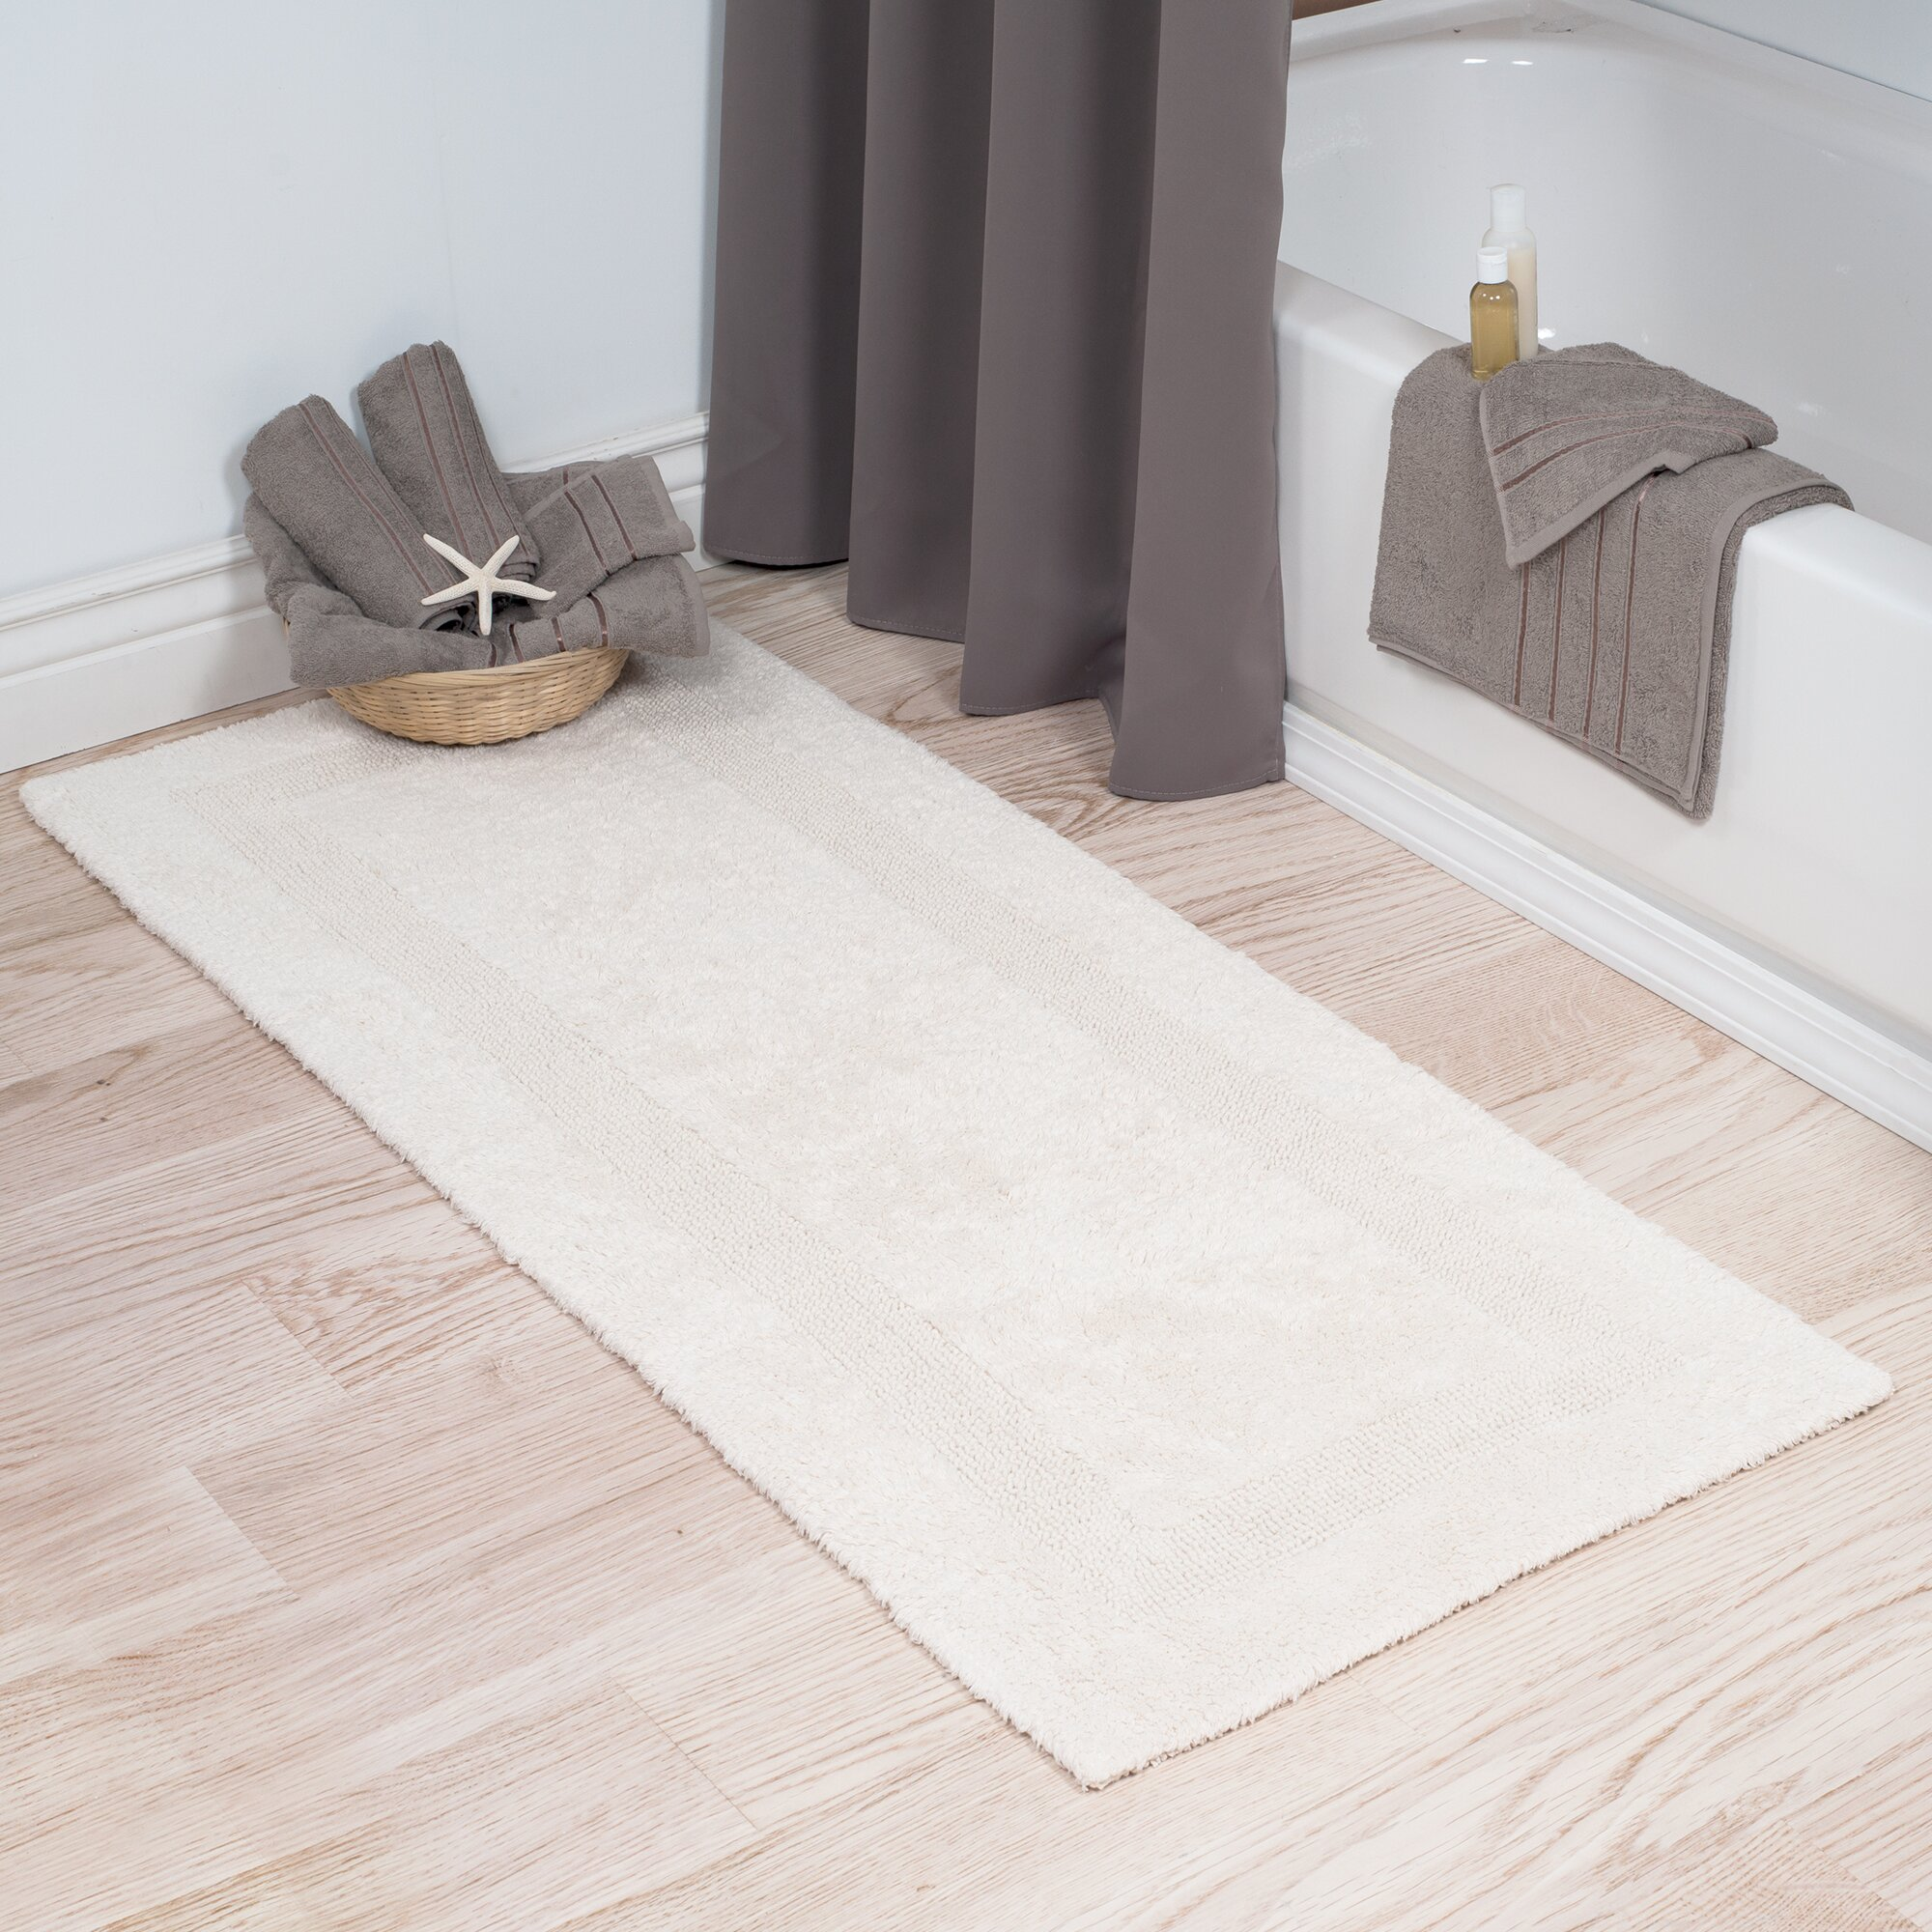 Darby Home Co Baysview Extra Long Reversible Bath Rug